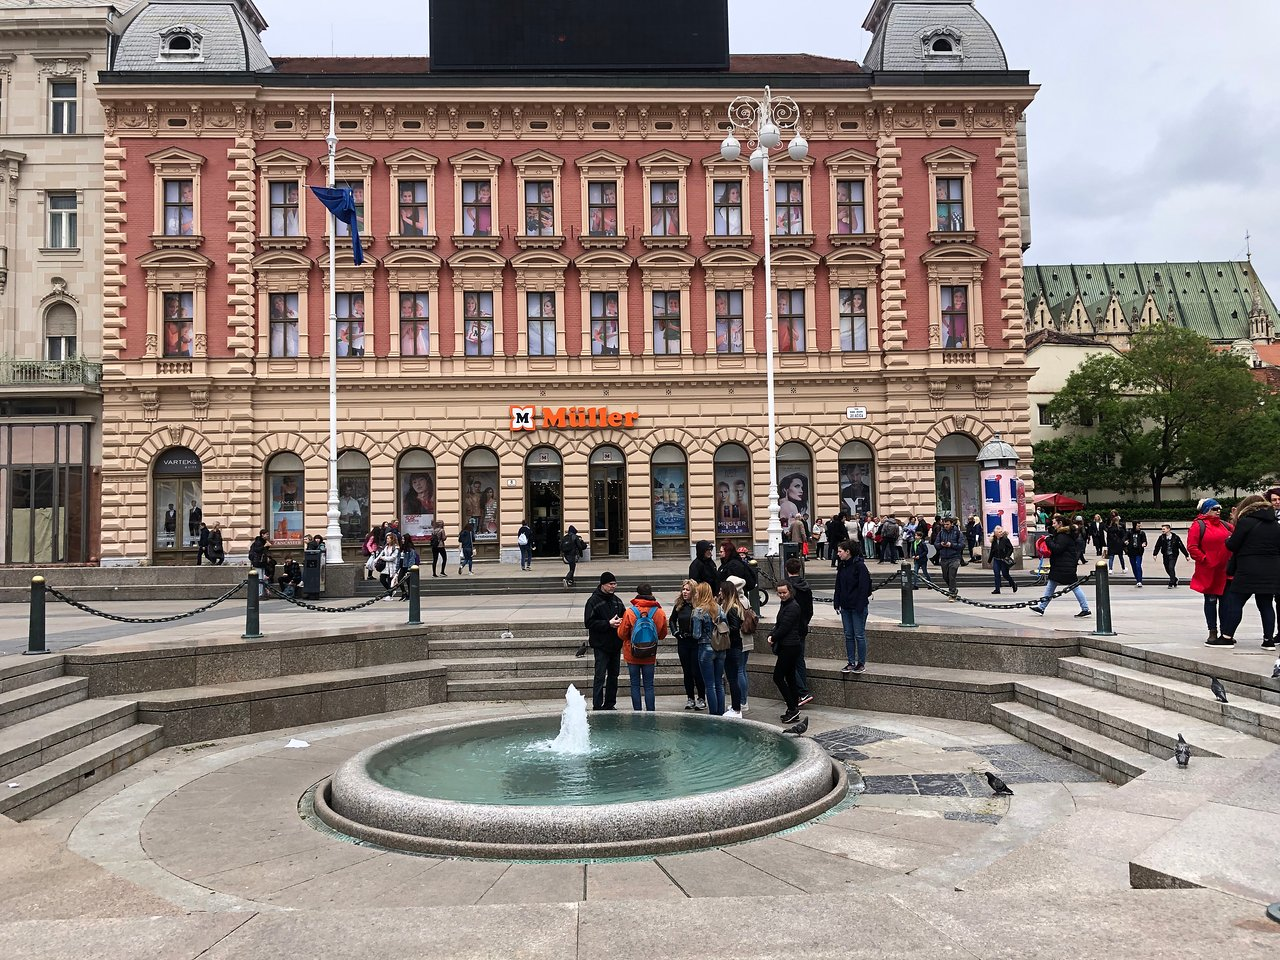 Mandusevac Fountain Zagreb 2021 All You Need To Know Before You Go With Photos Tripadvisor